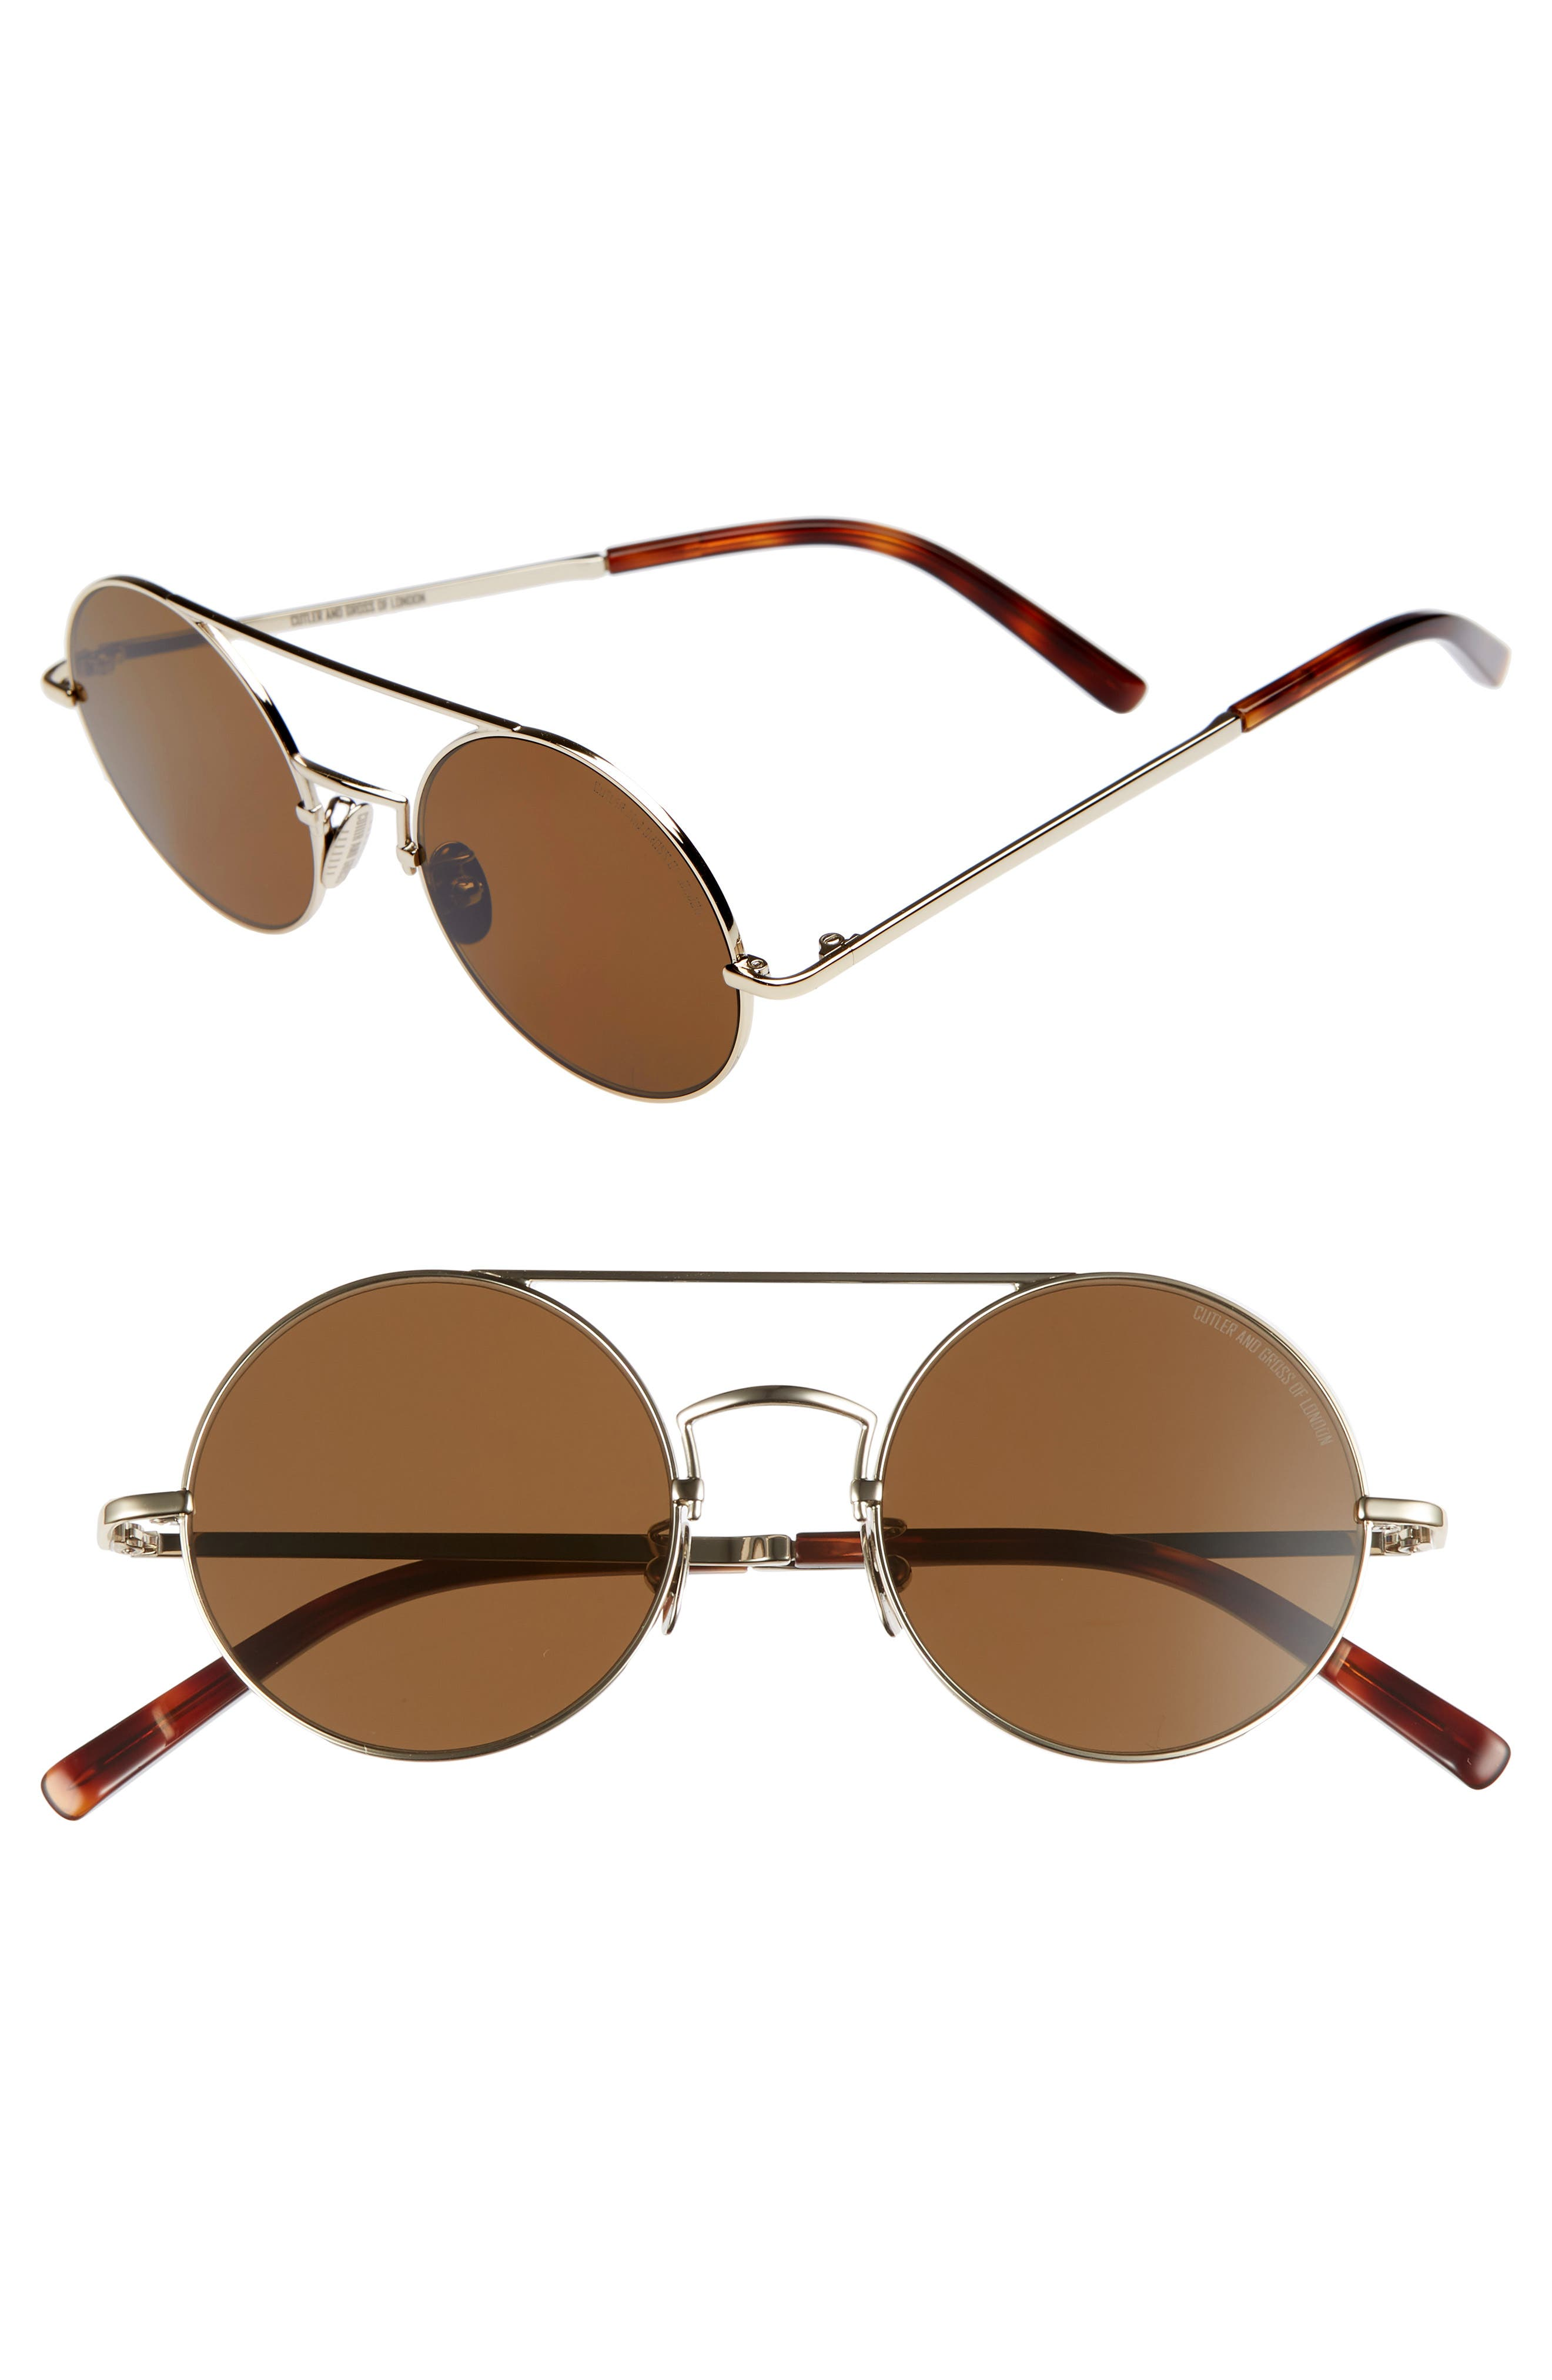 CUTLER AND GROSS 49MM POLARIZED ROUND SUNGLASSES - GOLD/ DARK BROWN